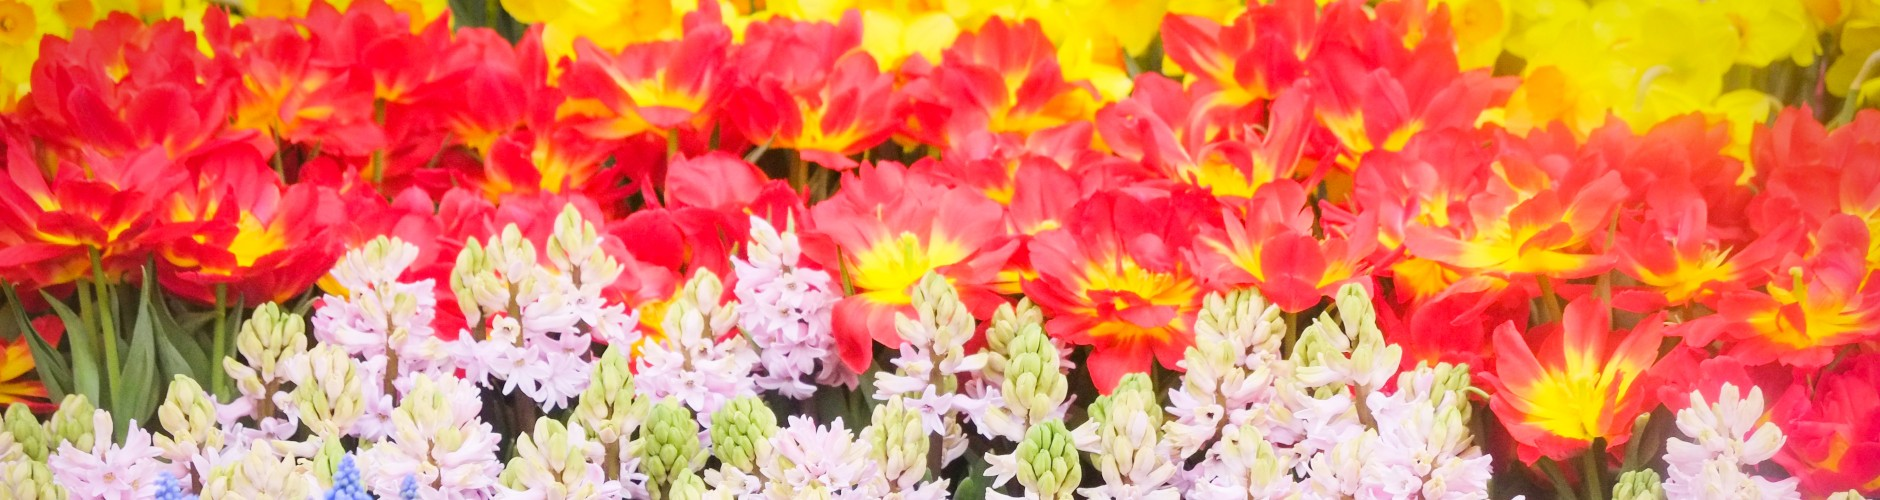 Combination of red, yellow and white flowers